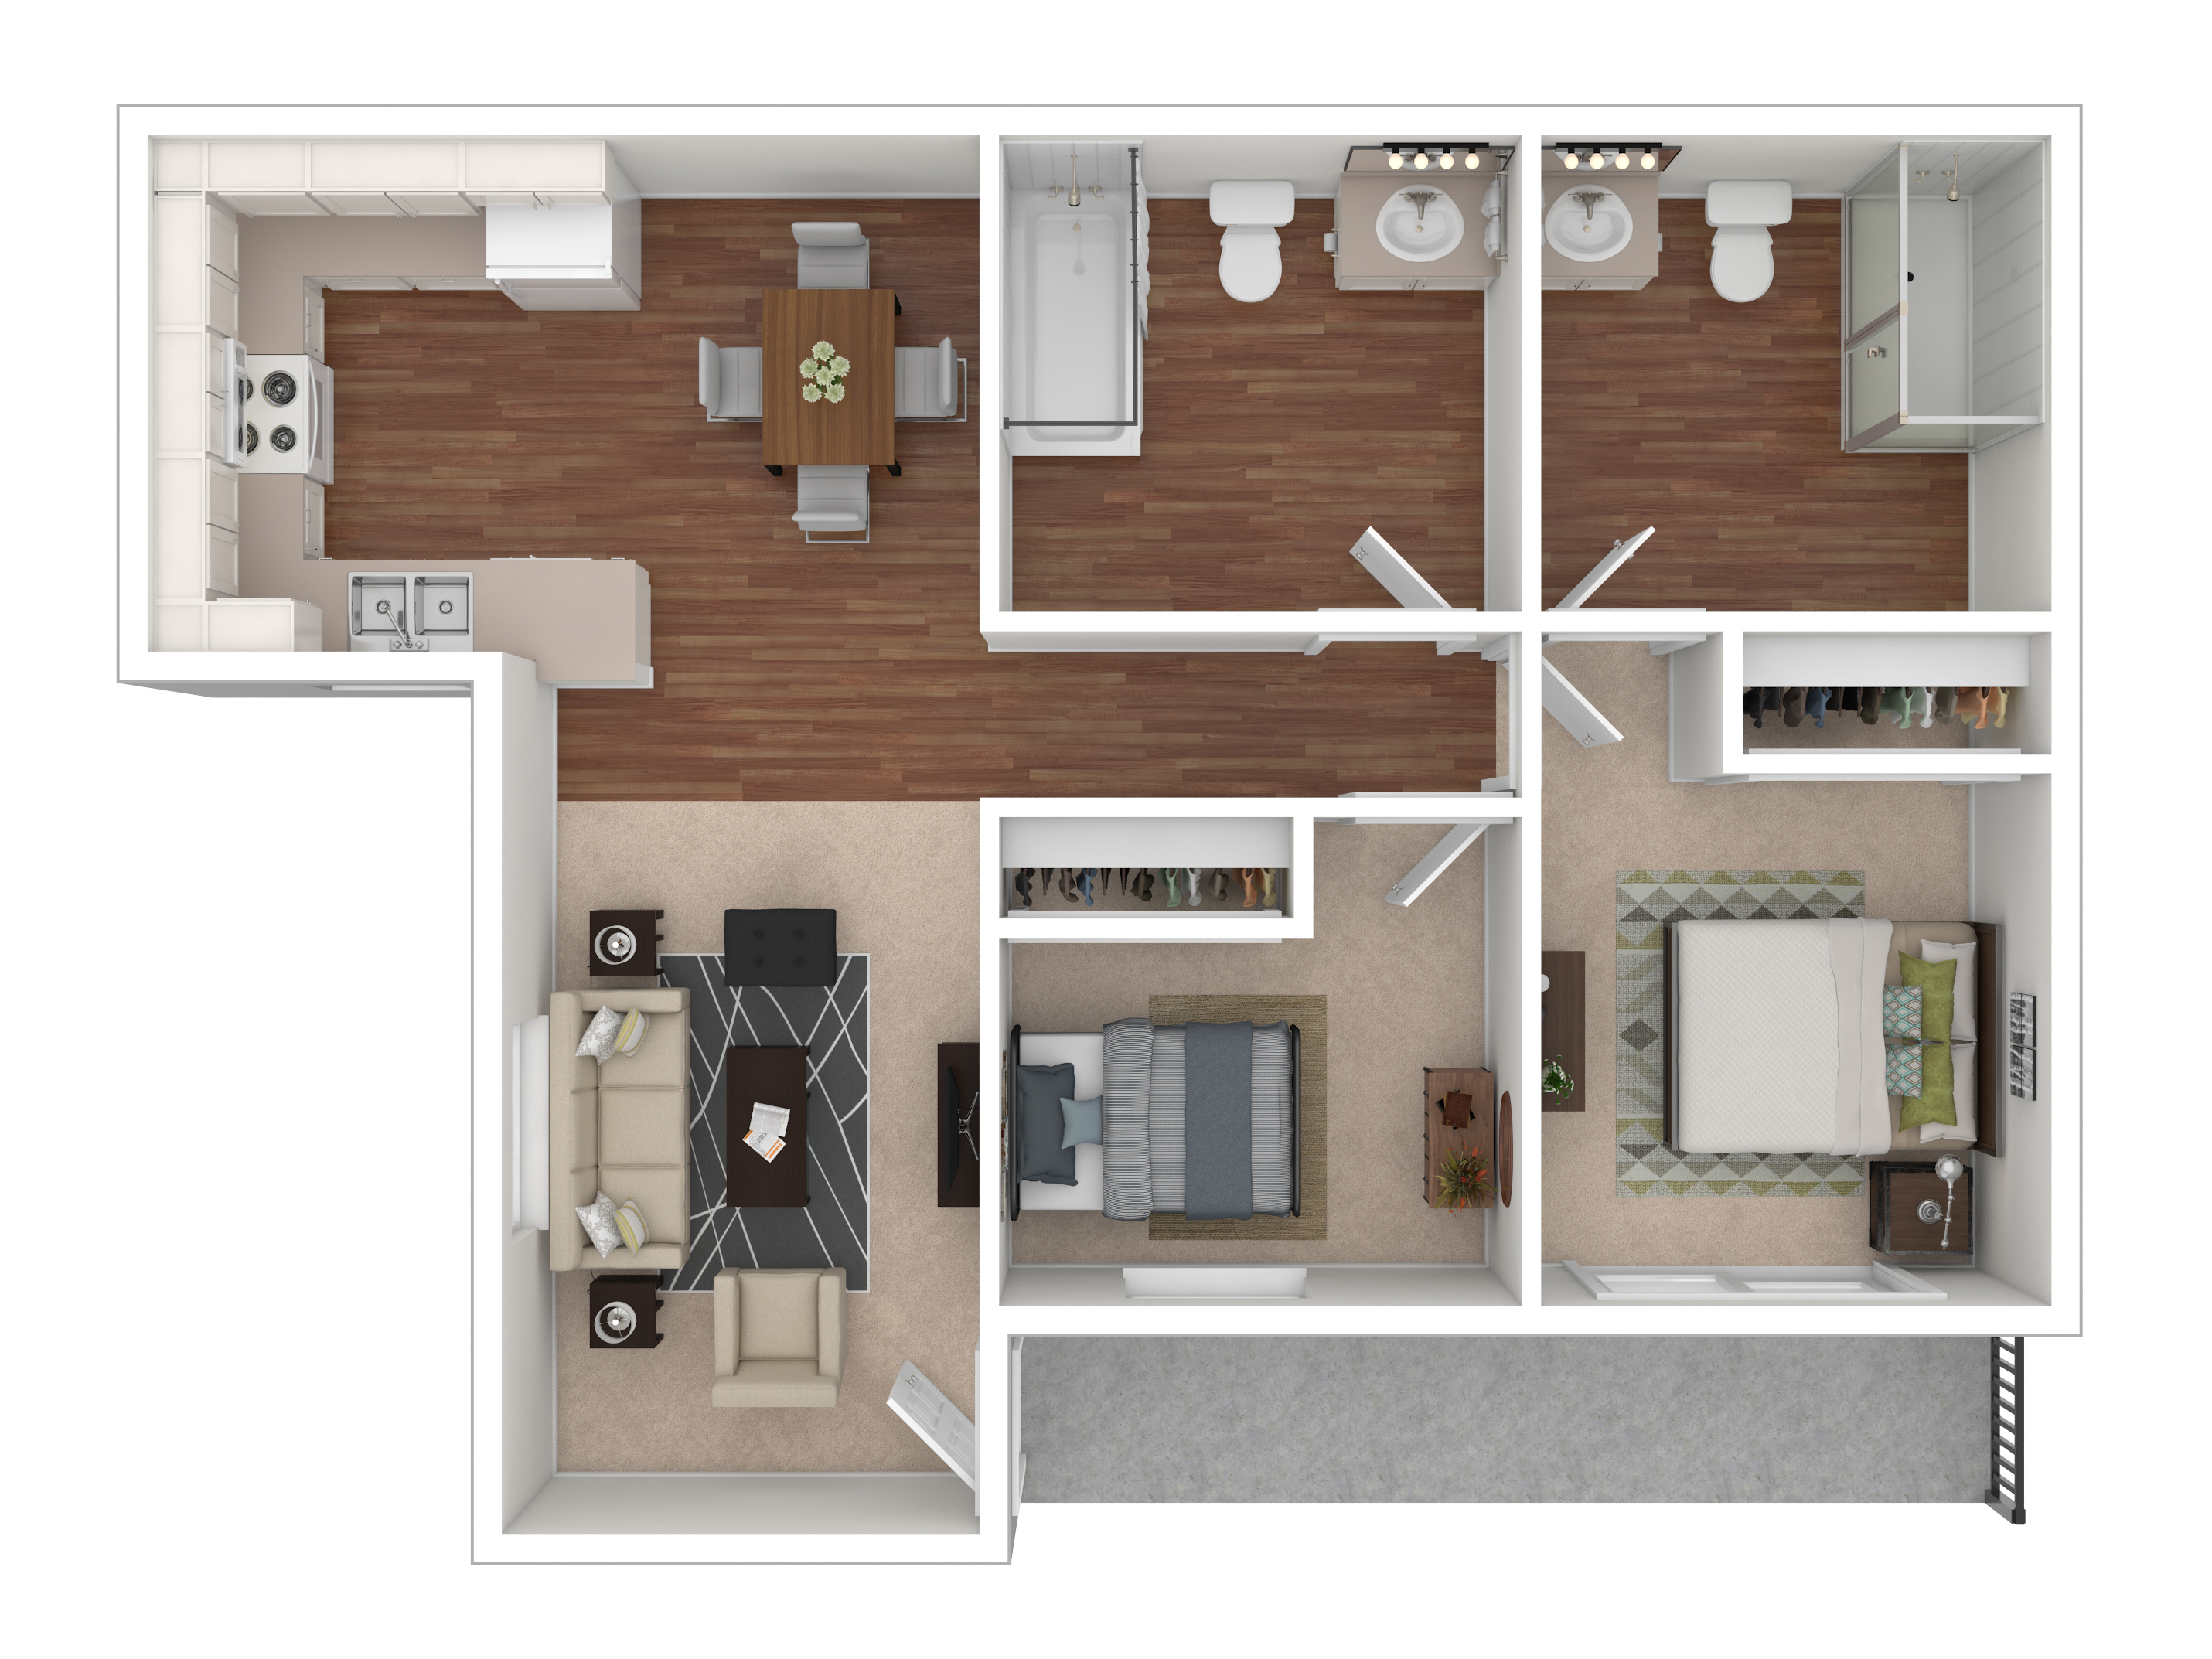 View floor plan image of 2 Bedroom 2 Bathroom B apartment available now